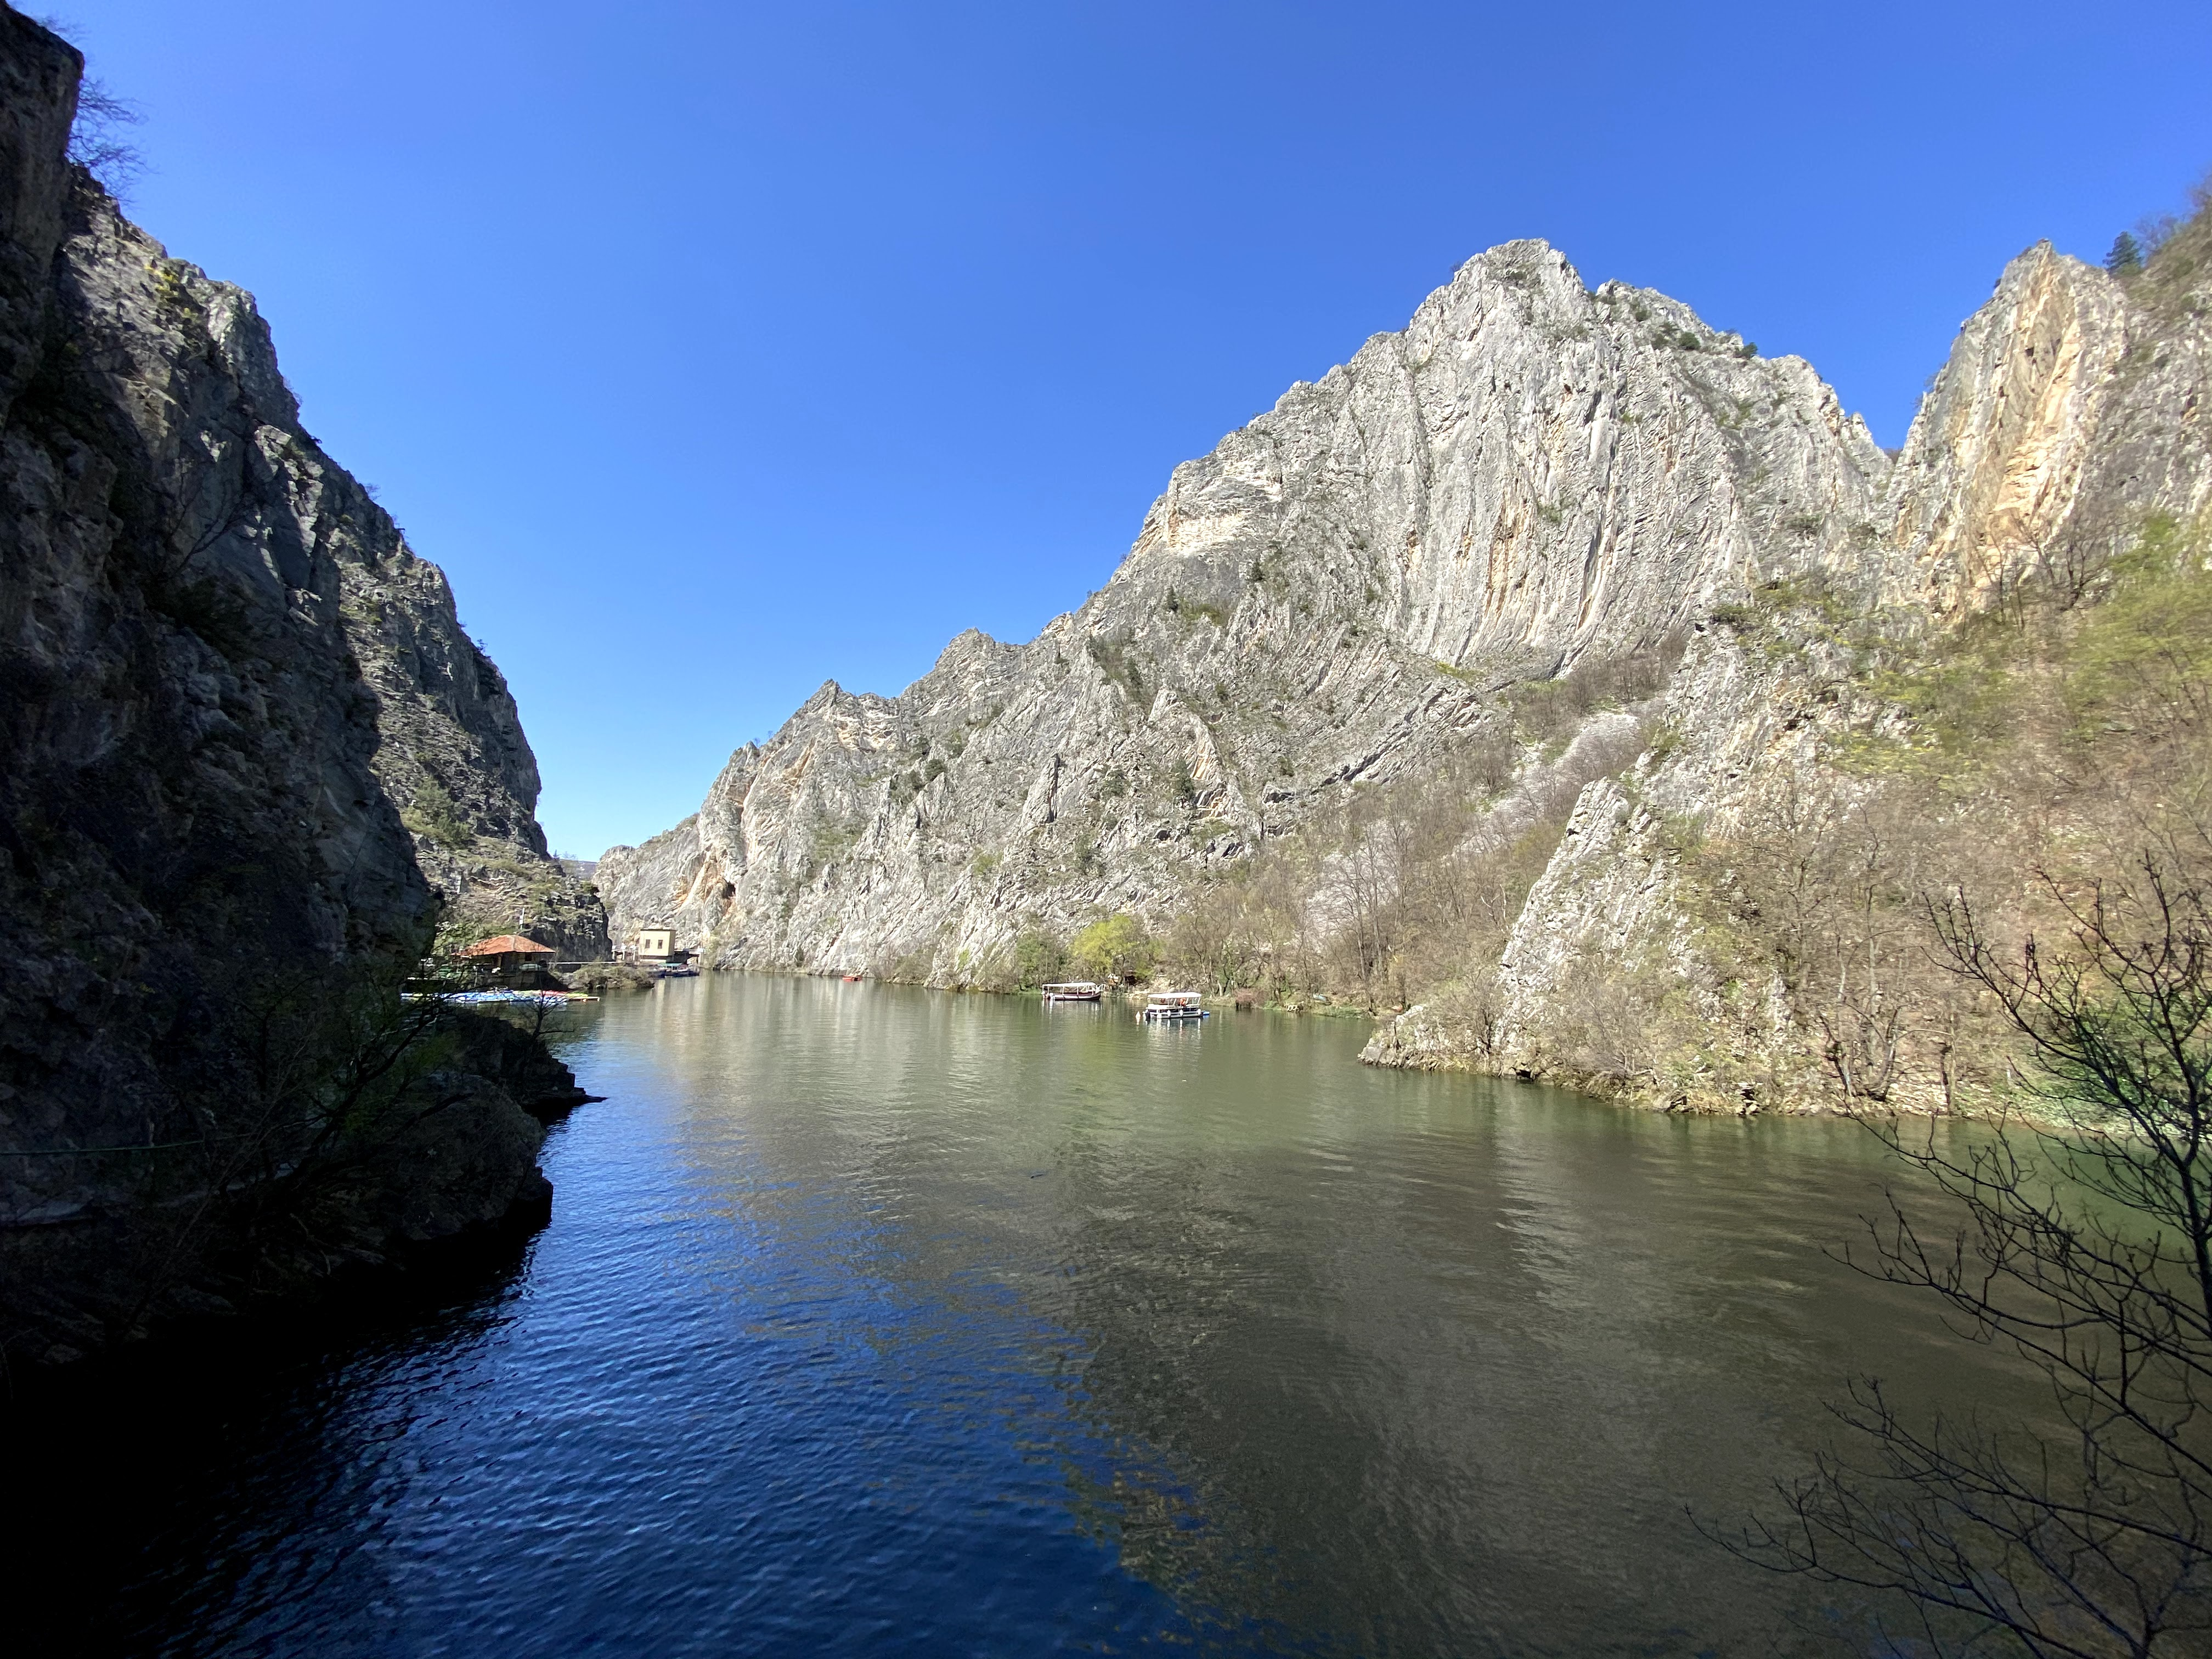 Large open Matka Canyon with a river filled the bottom. There are a few tourist boats on the lake.